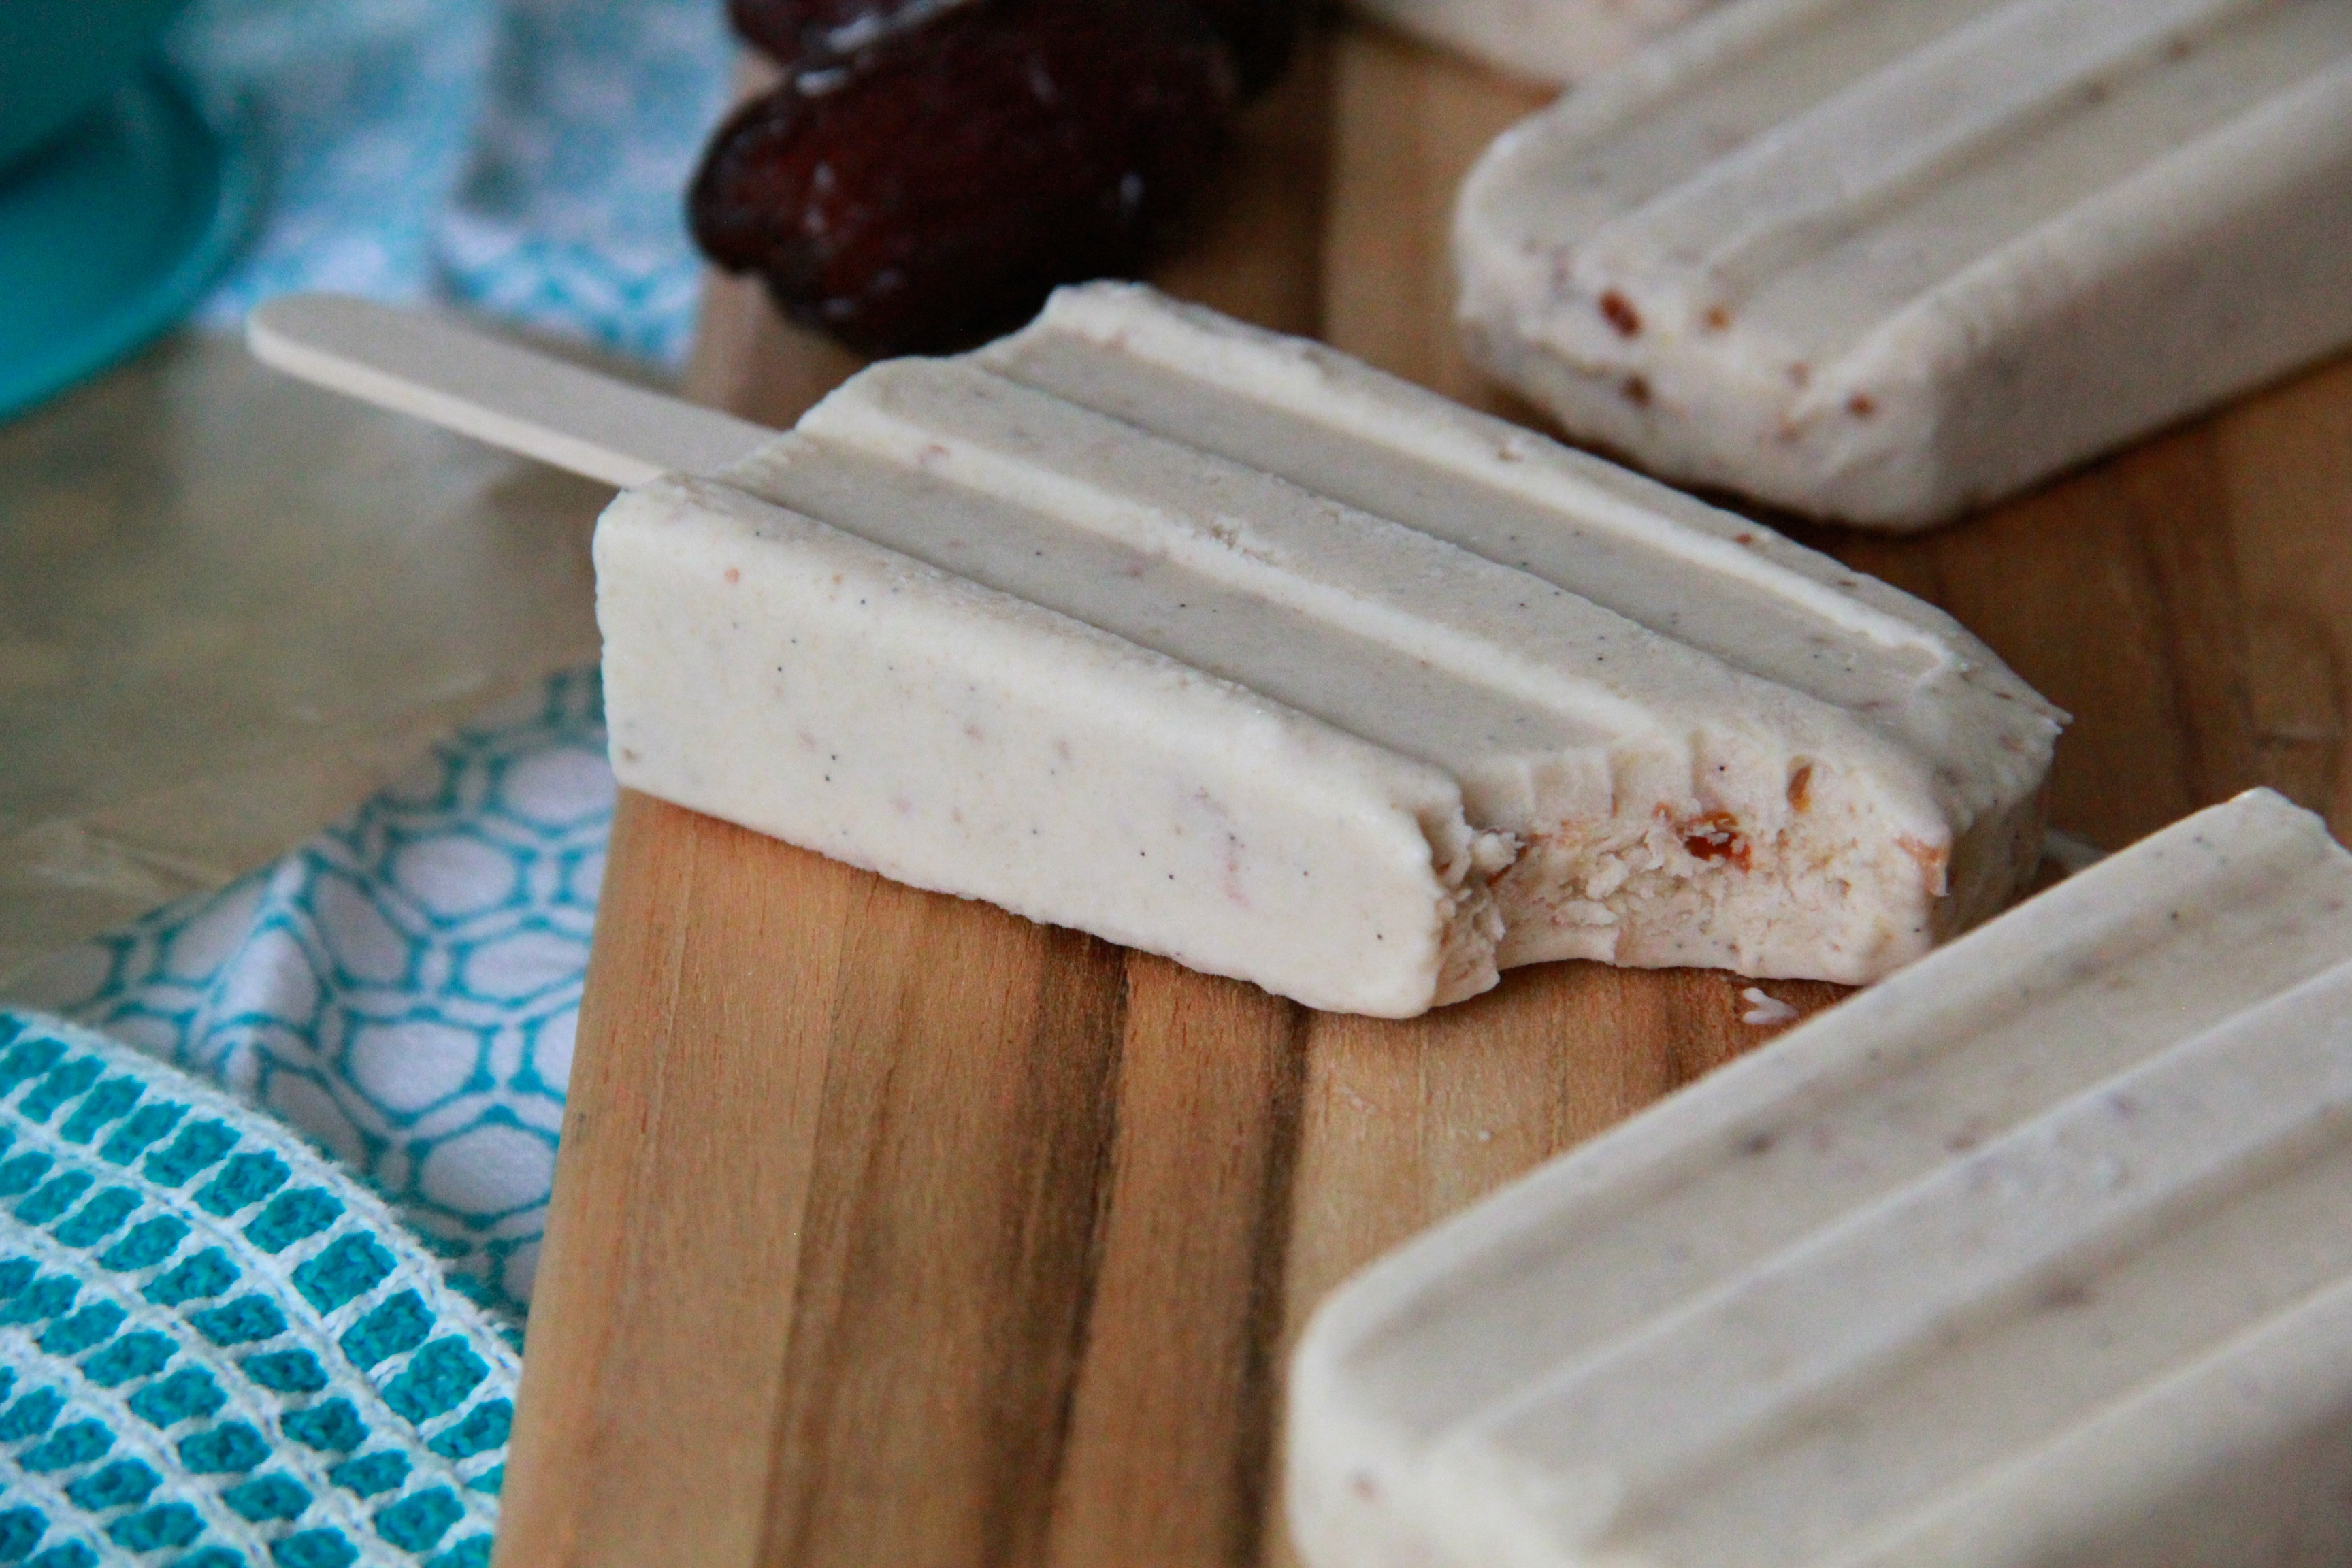 popsicles date shake popsicles whole date shake popsicles shake your ...